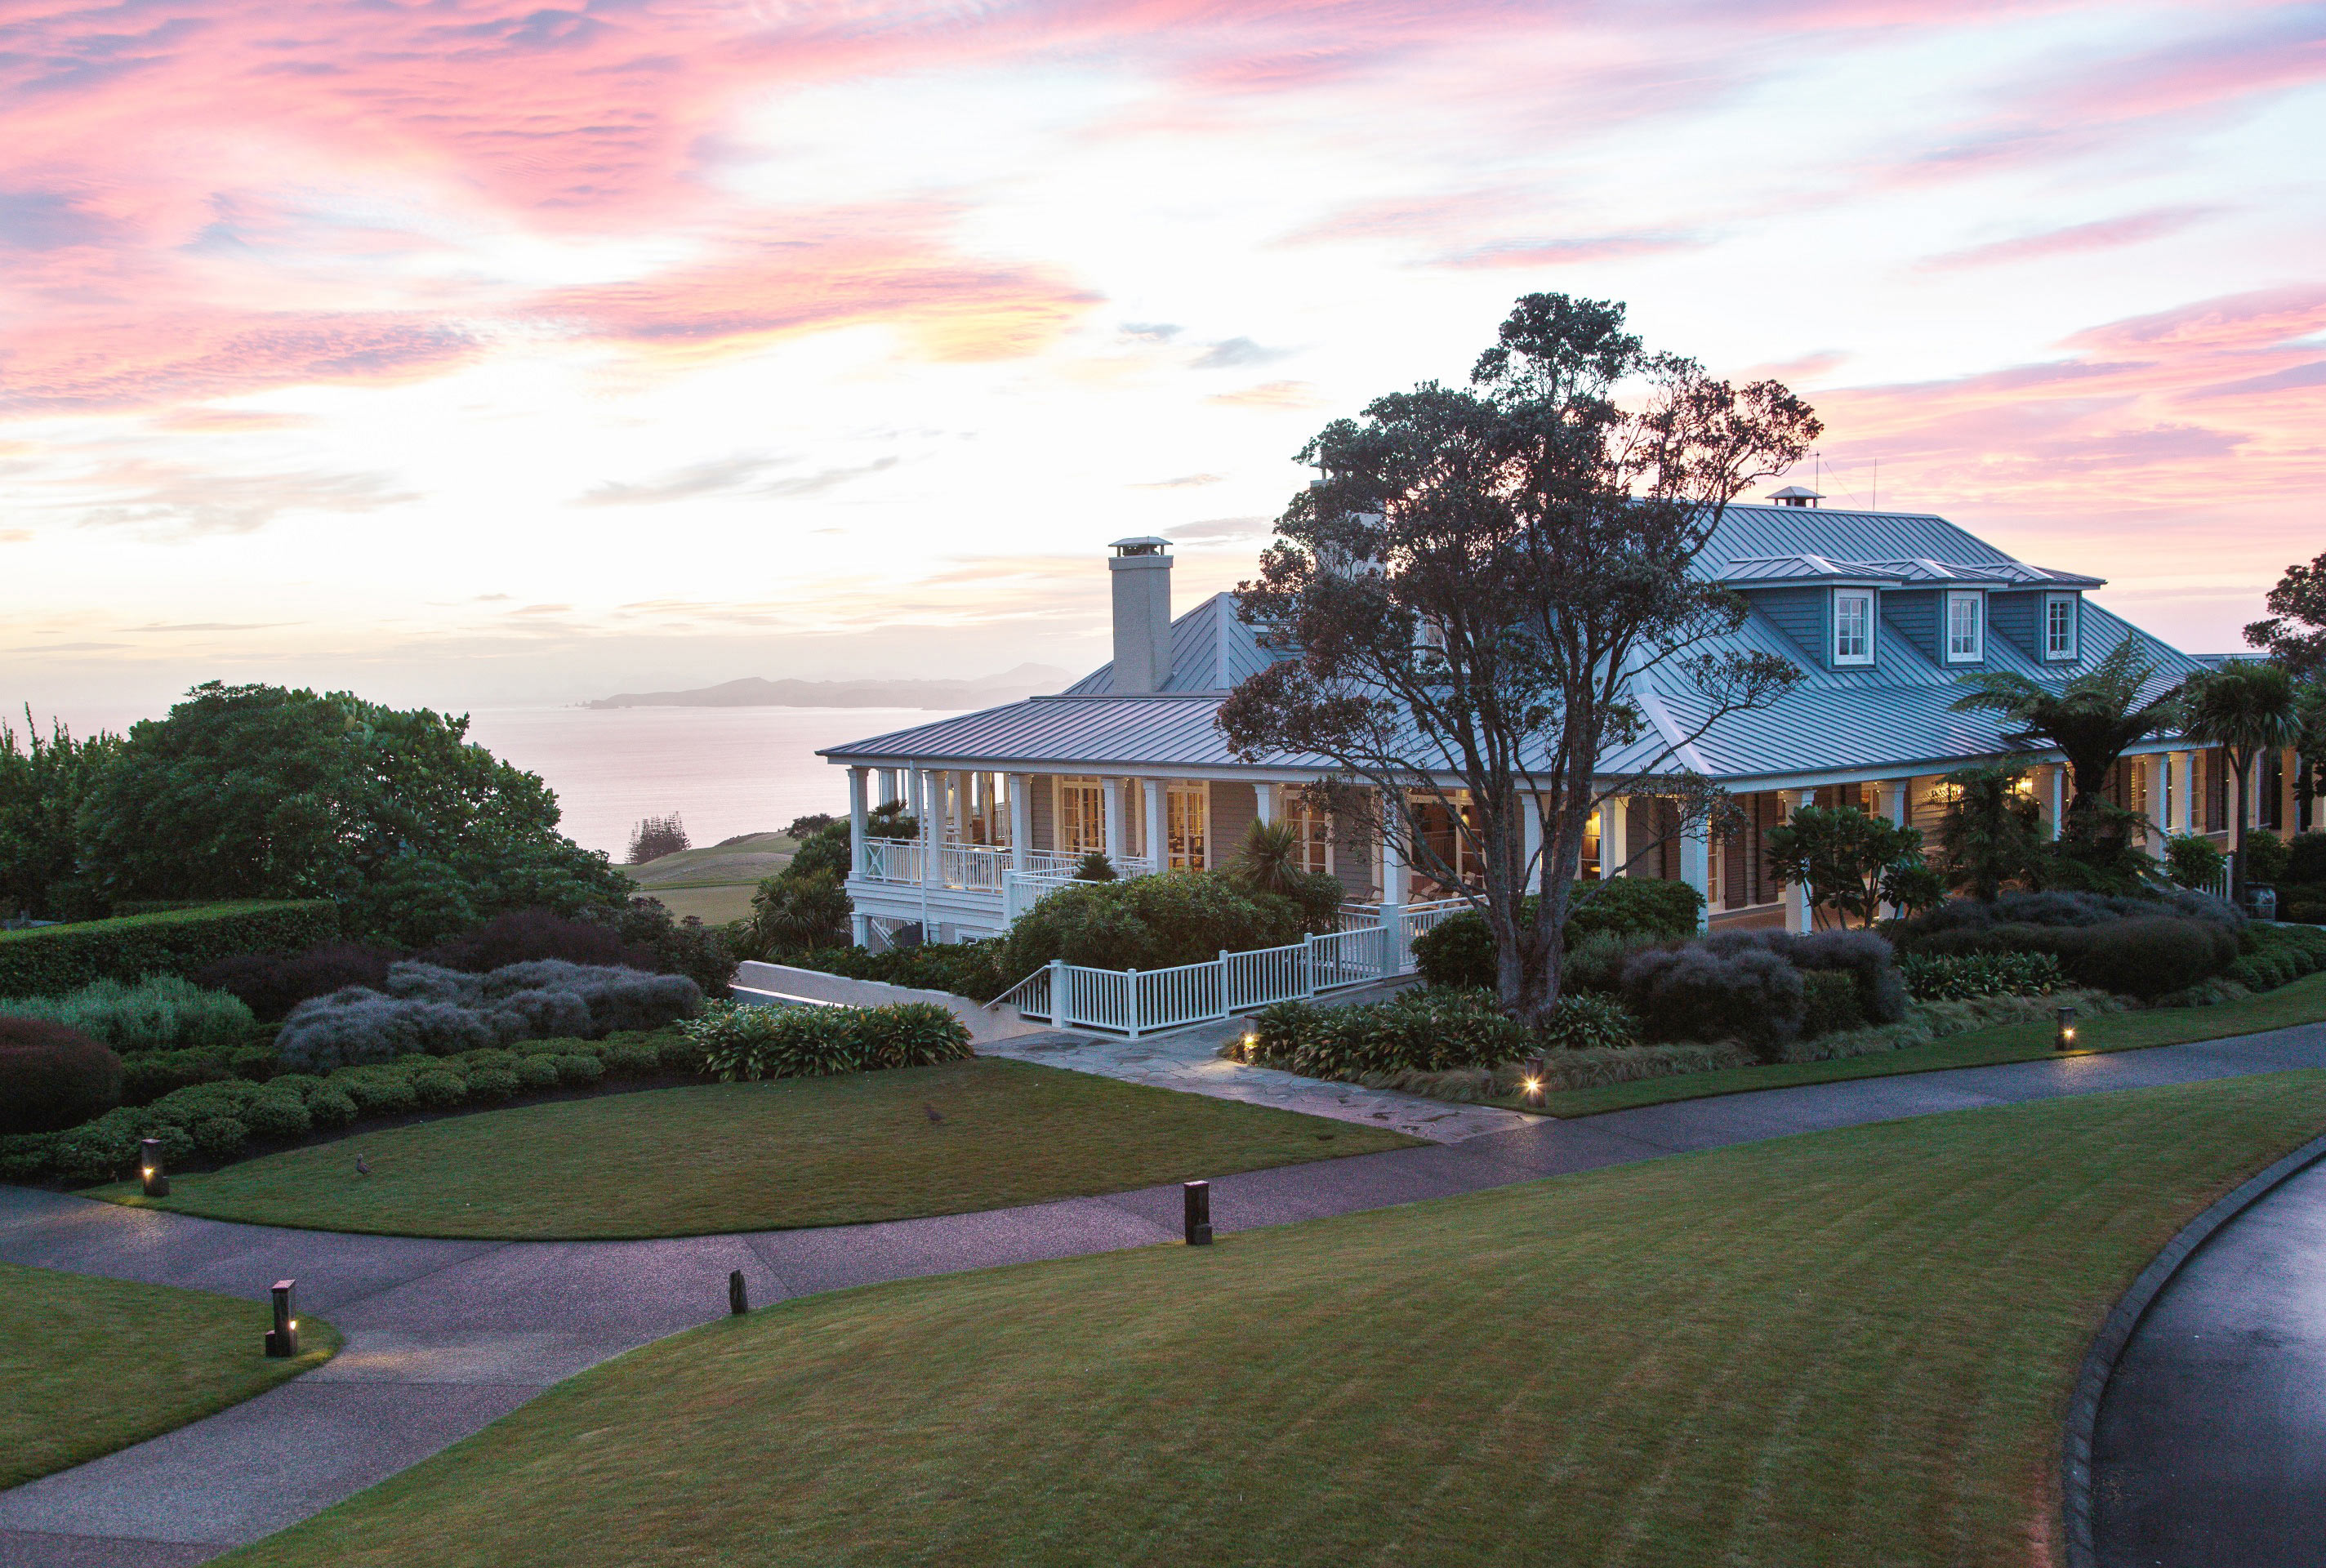 Welcome To Kauri Cliffs: One Of New Zealand's Most Exclusive Getaways